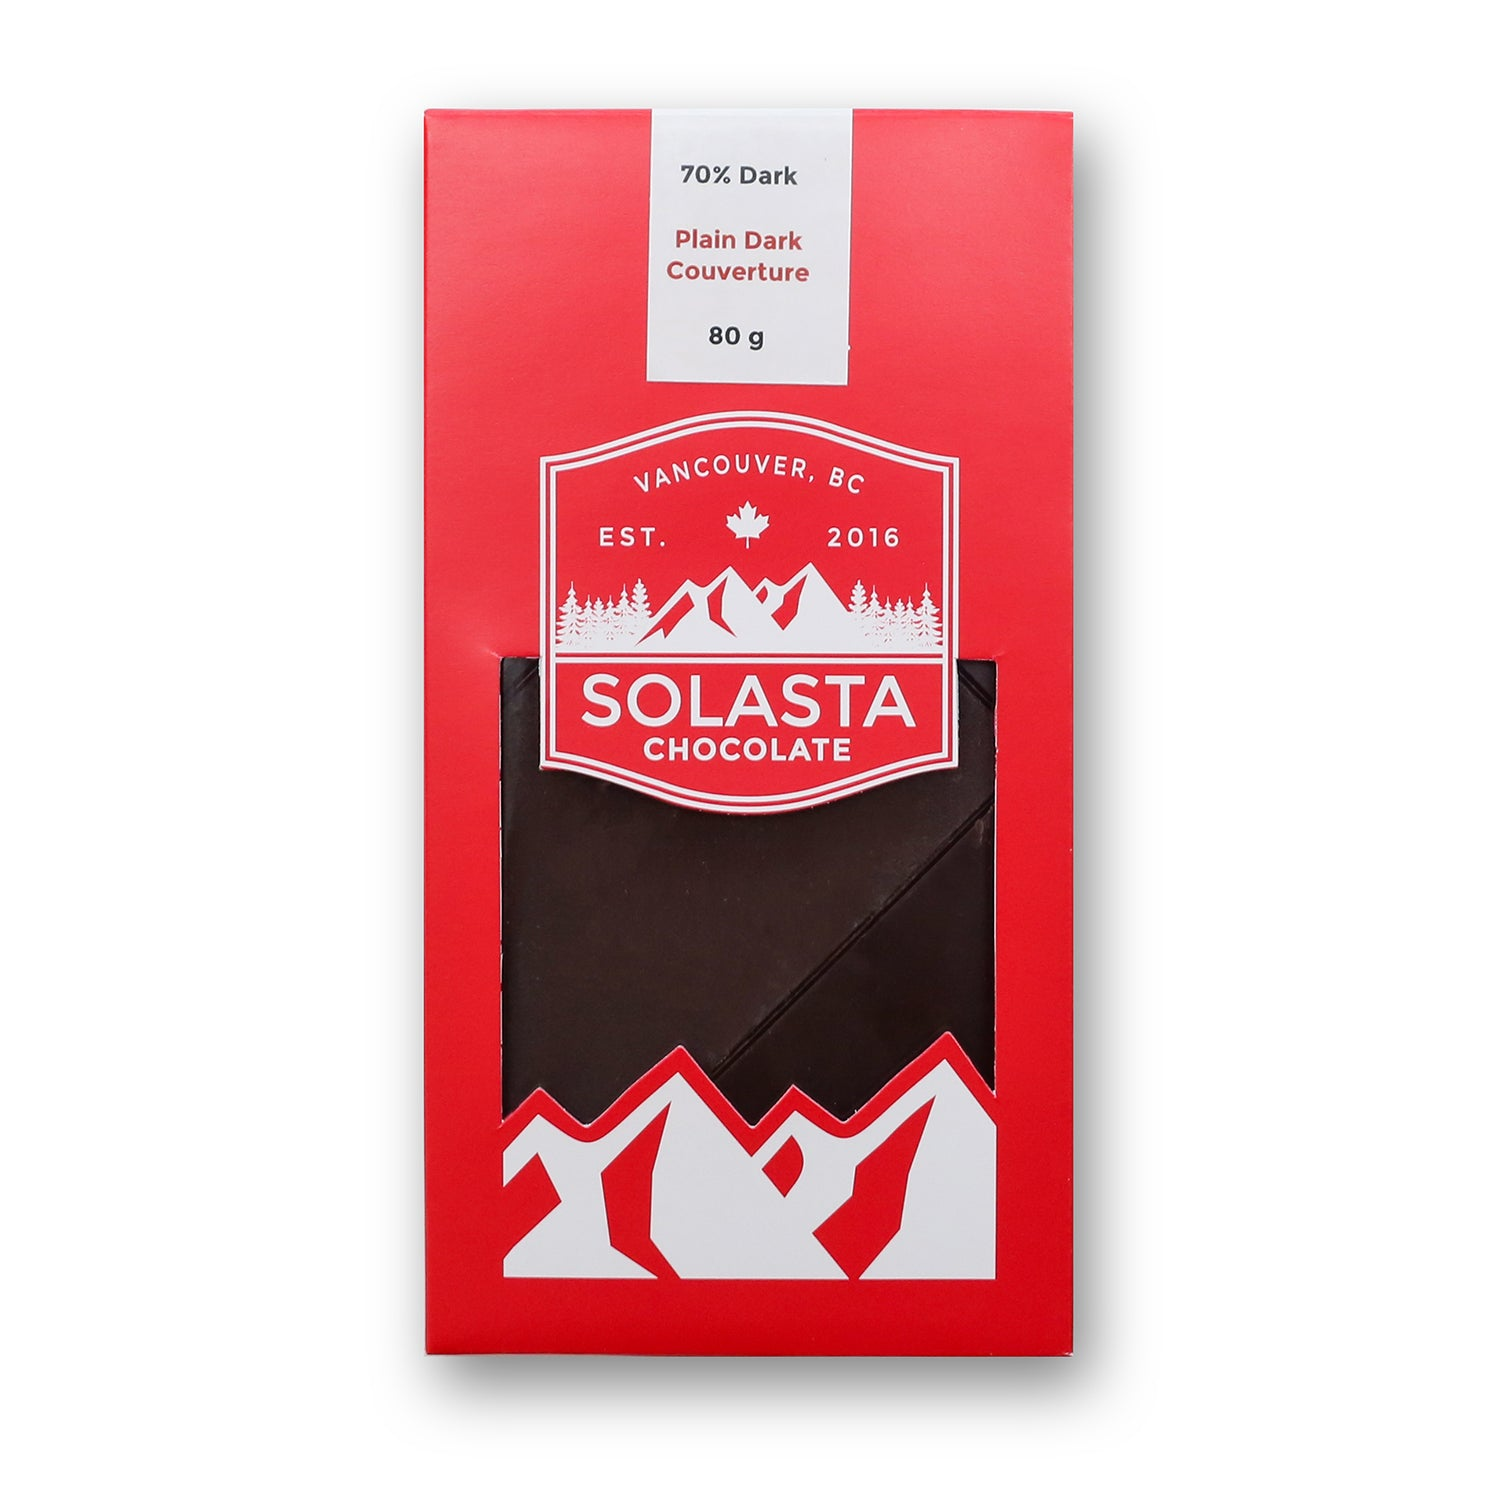 70% plain dark chocolate, Solasta Chocolate, Vancouver, BC